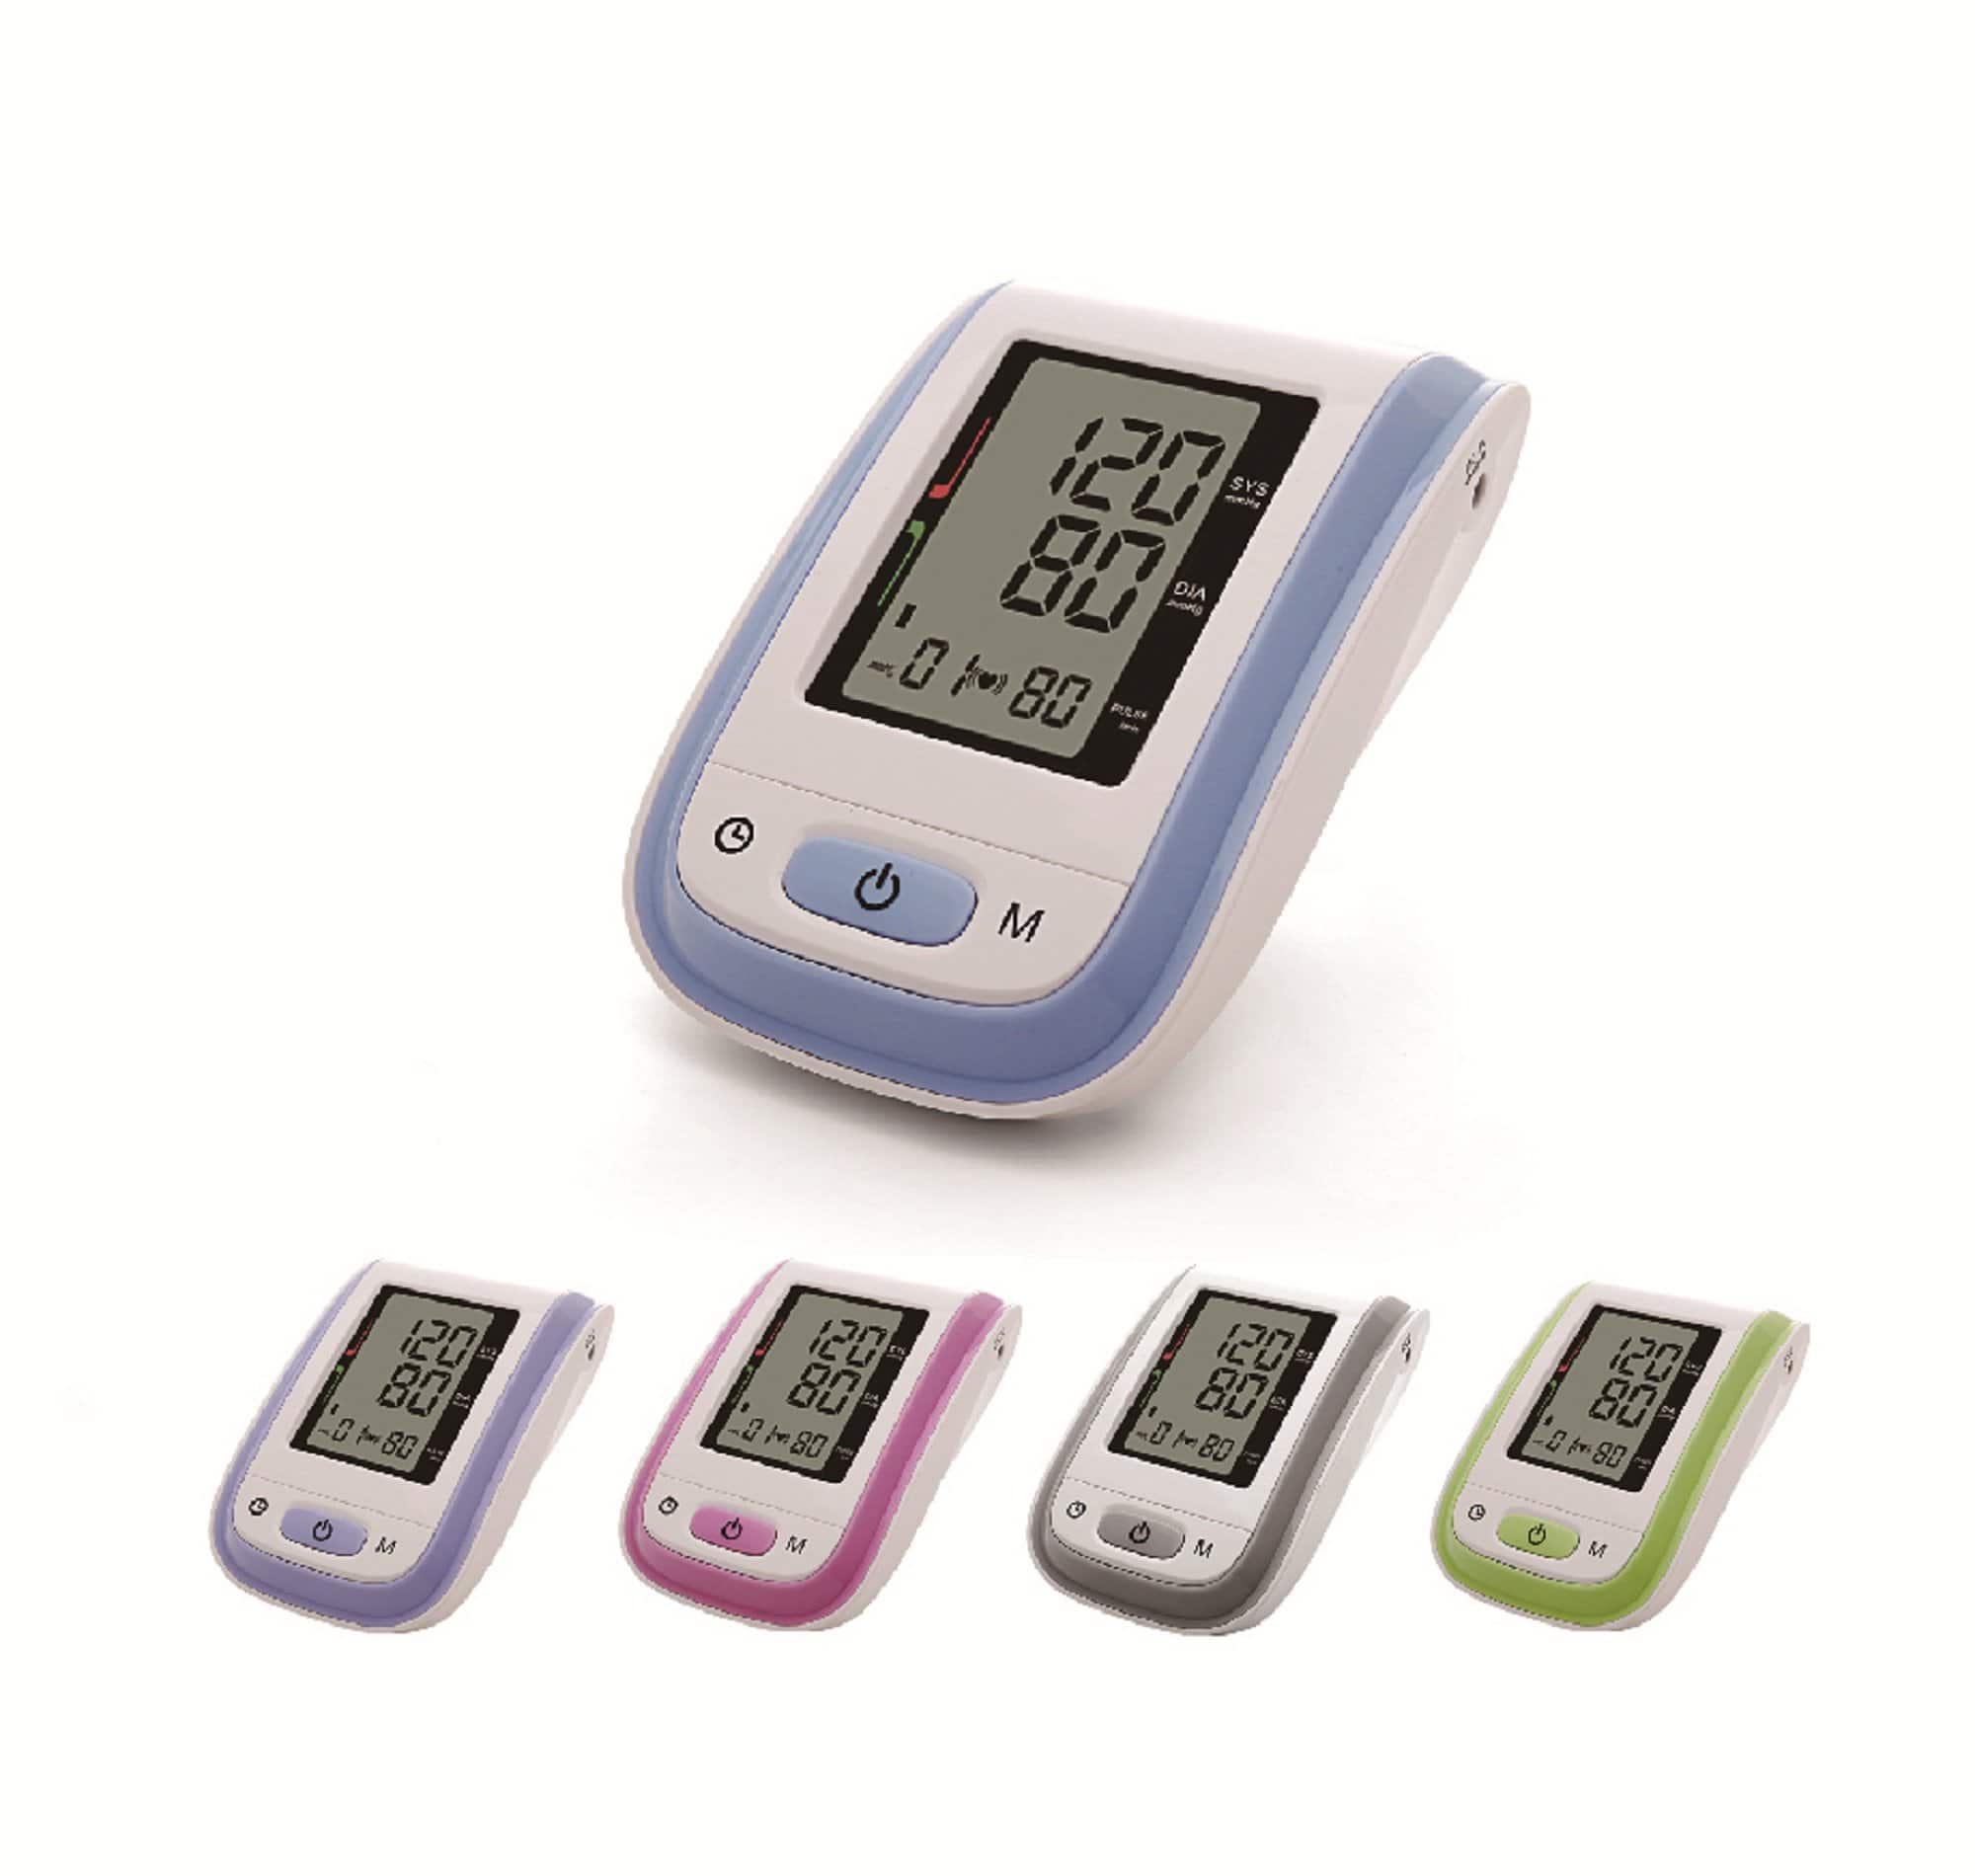 Yonker Arm blood pressure monitor for sale